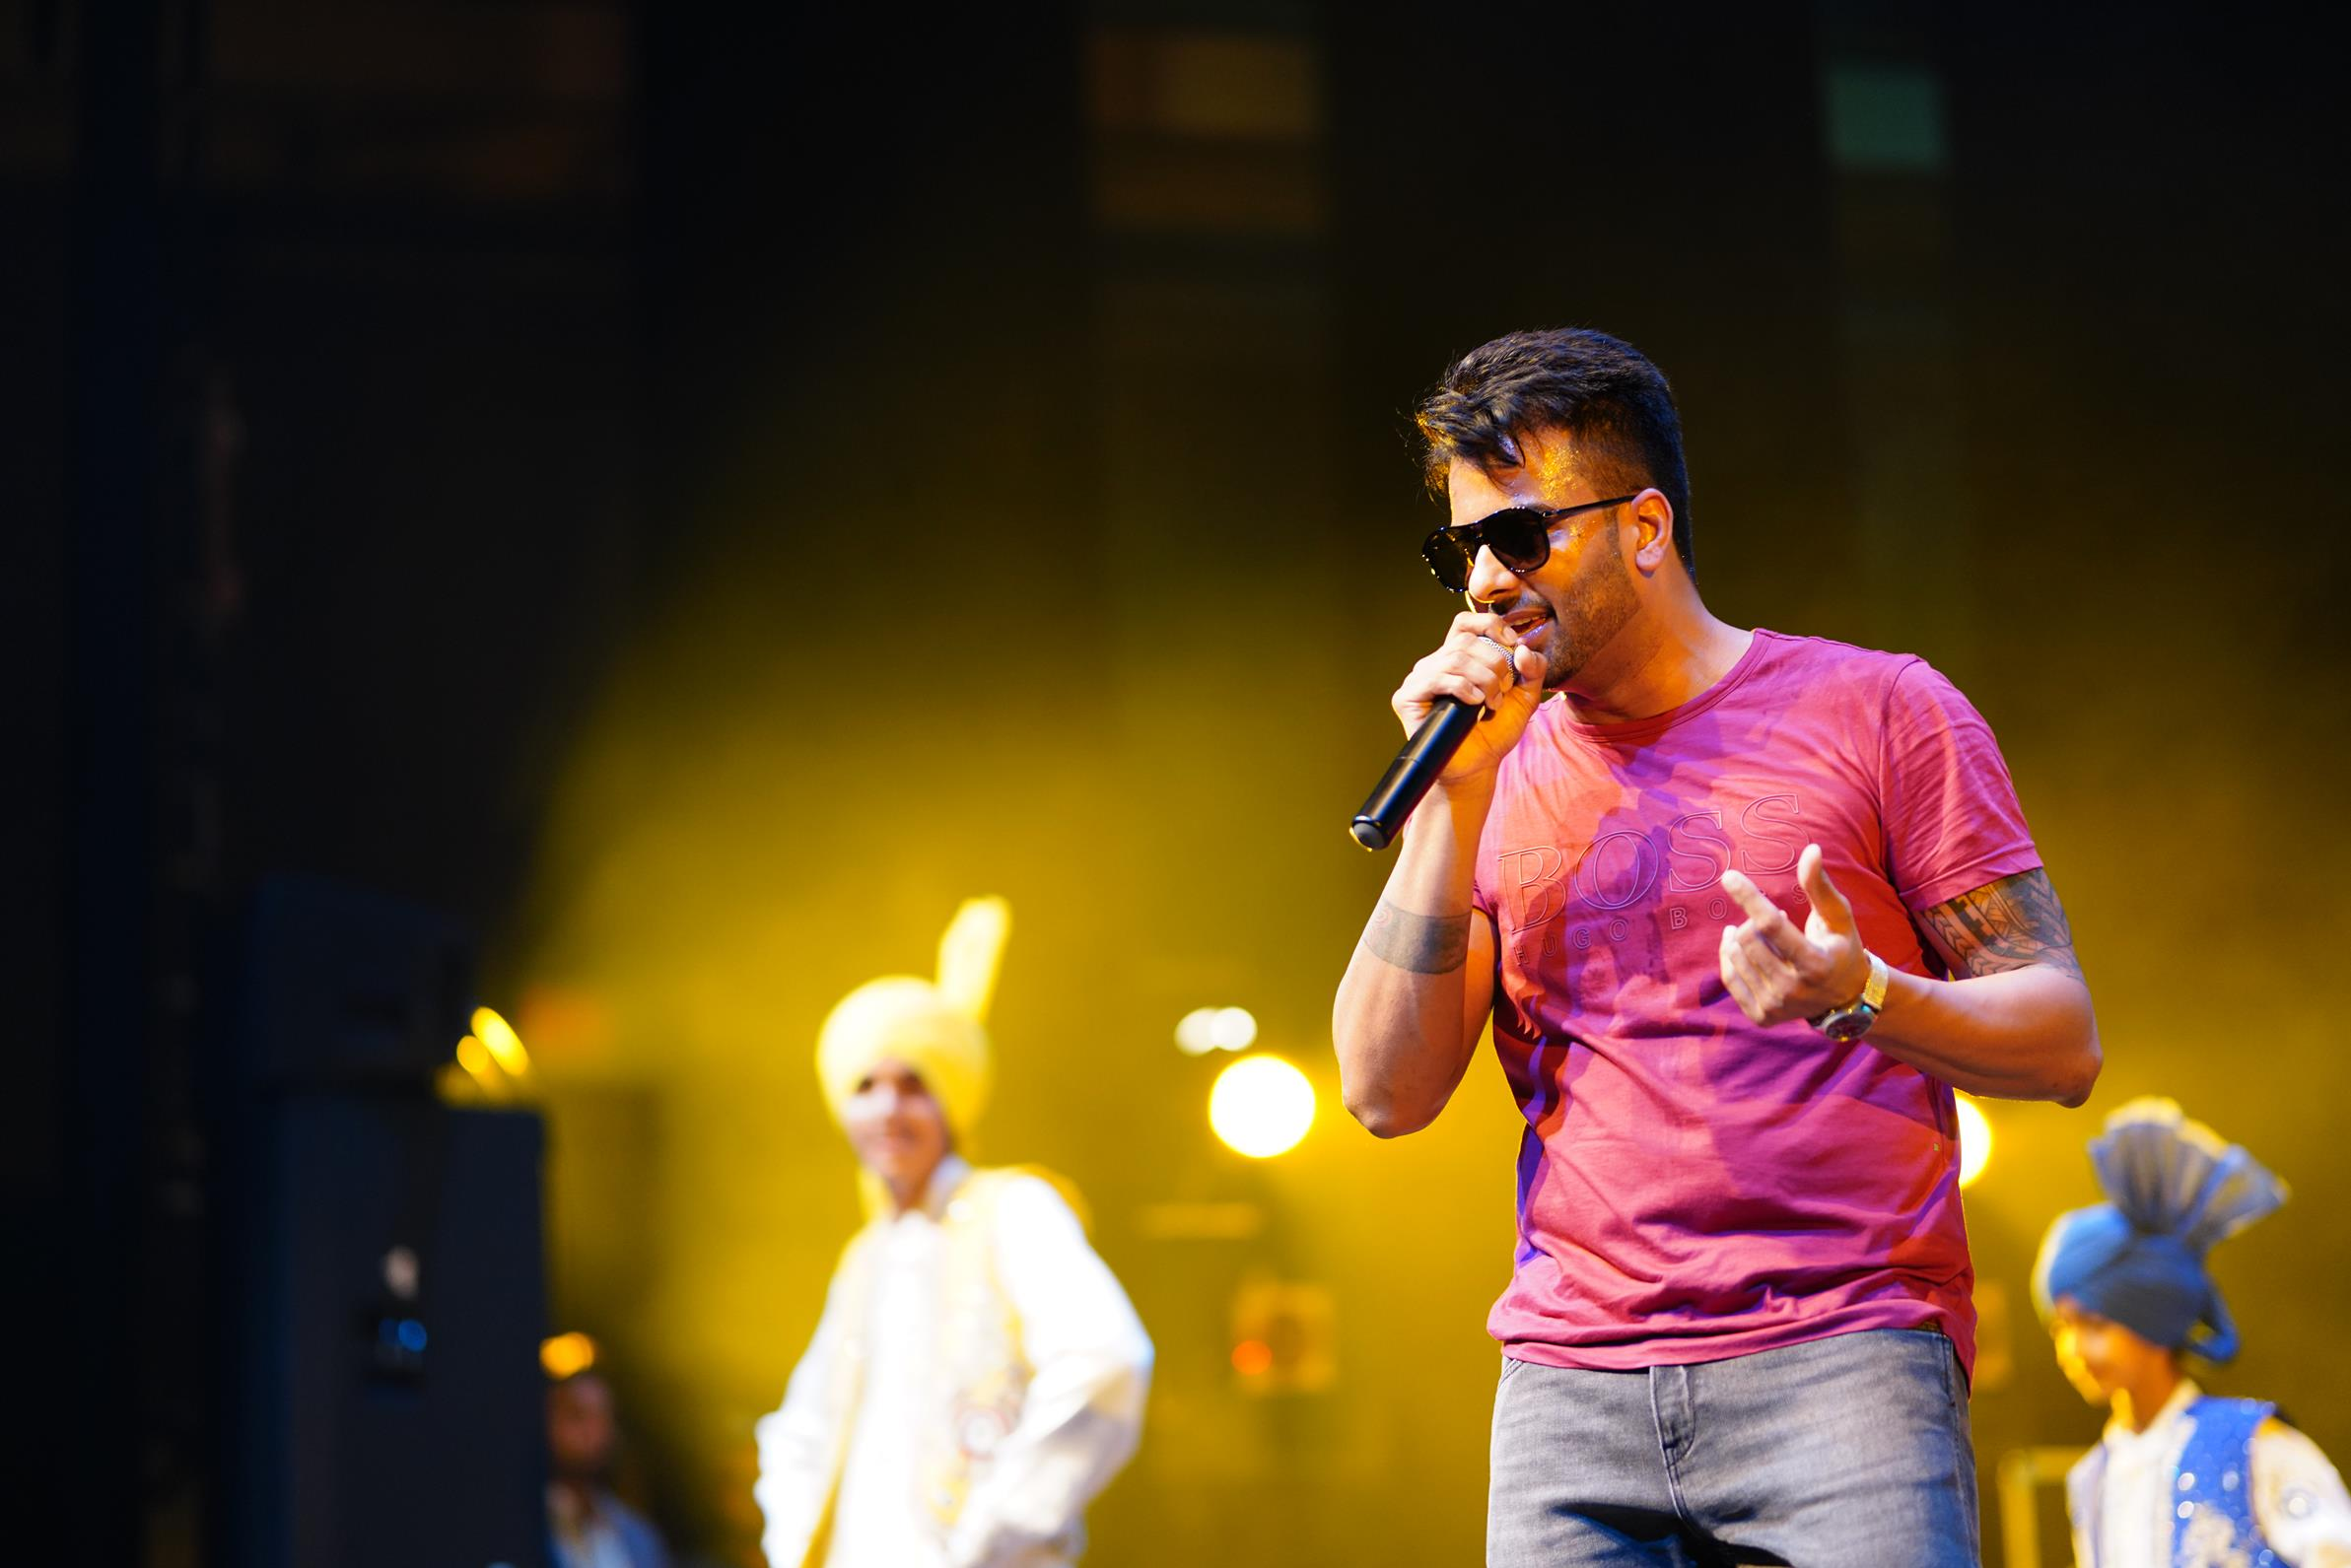 Mankirt Aulakh performing at G9 Bhangra